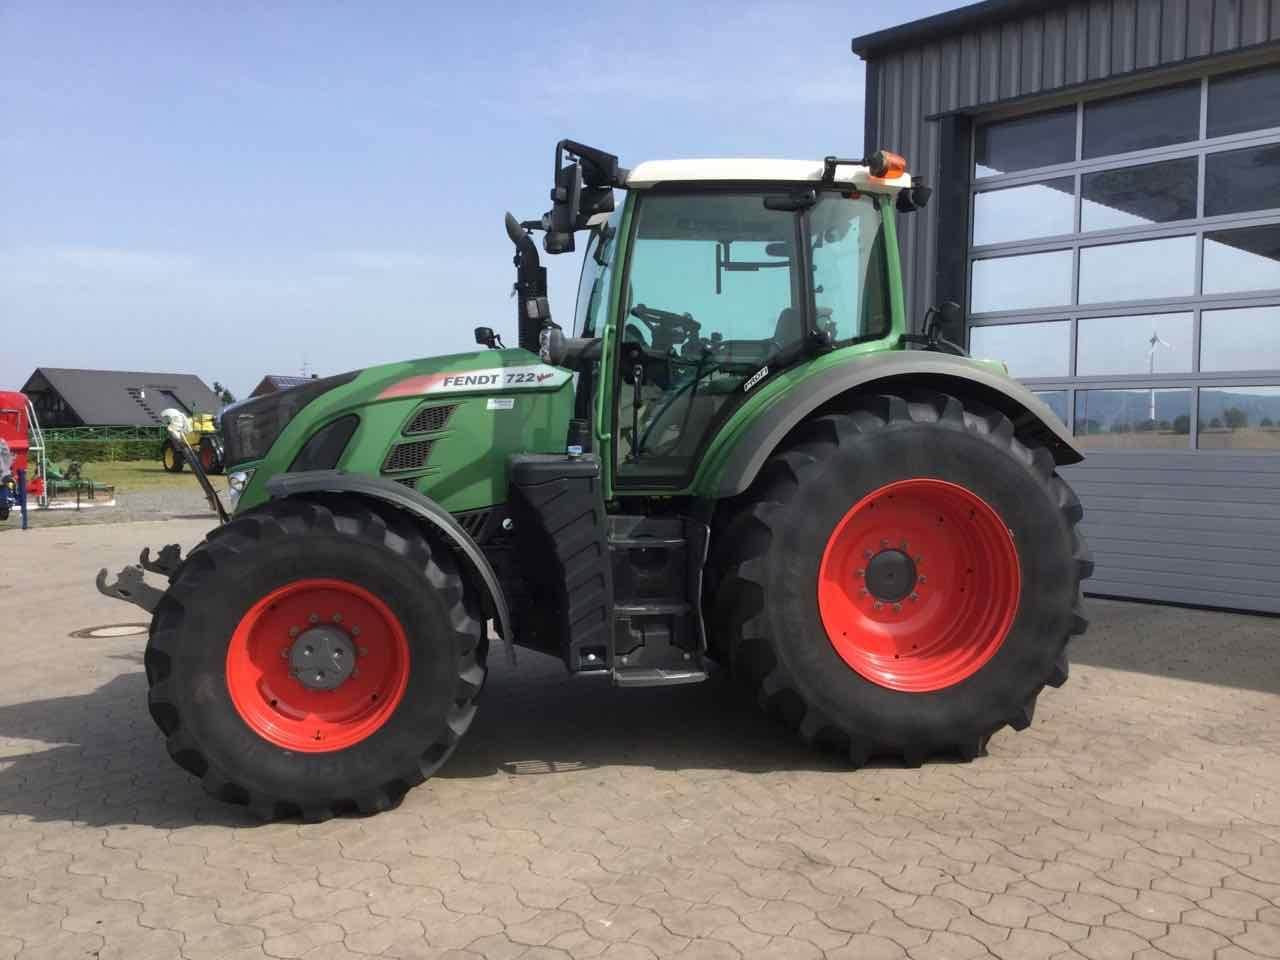 Fendt FENDT 722  S4 VarioGuide light